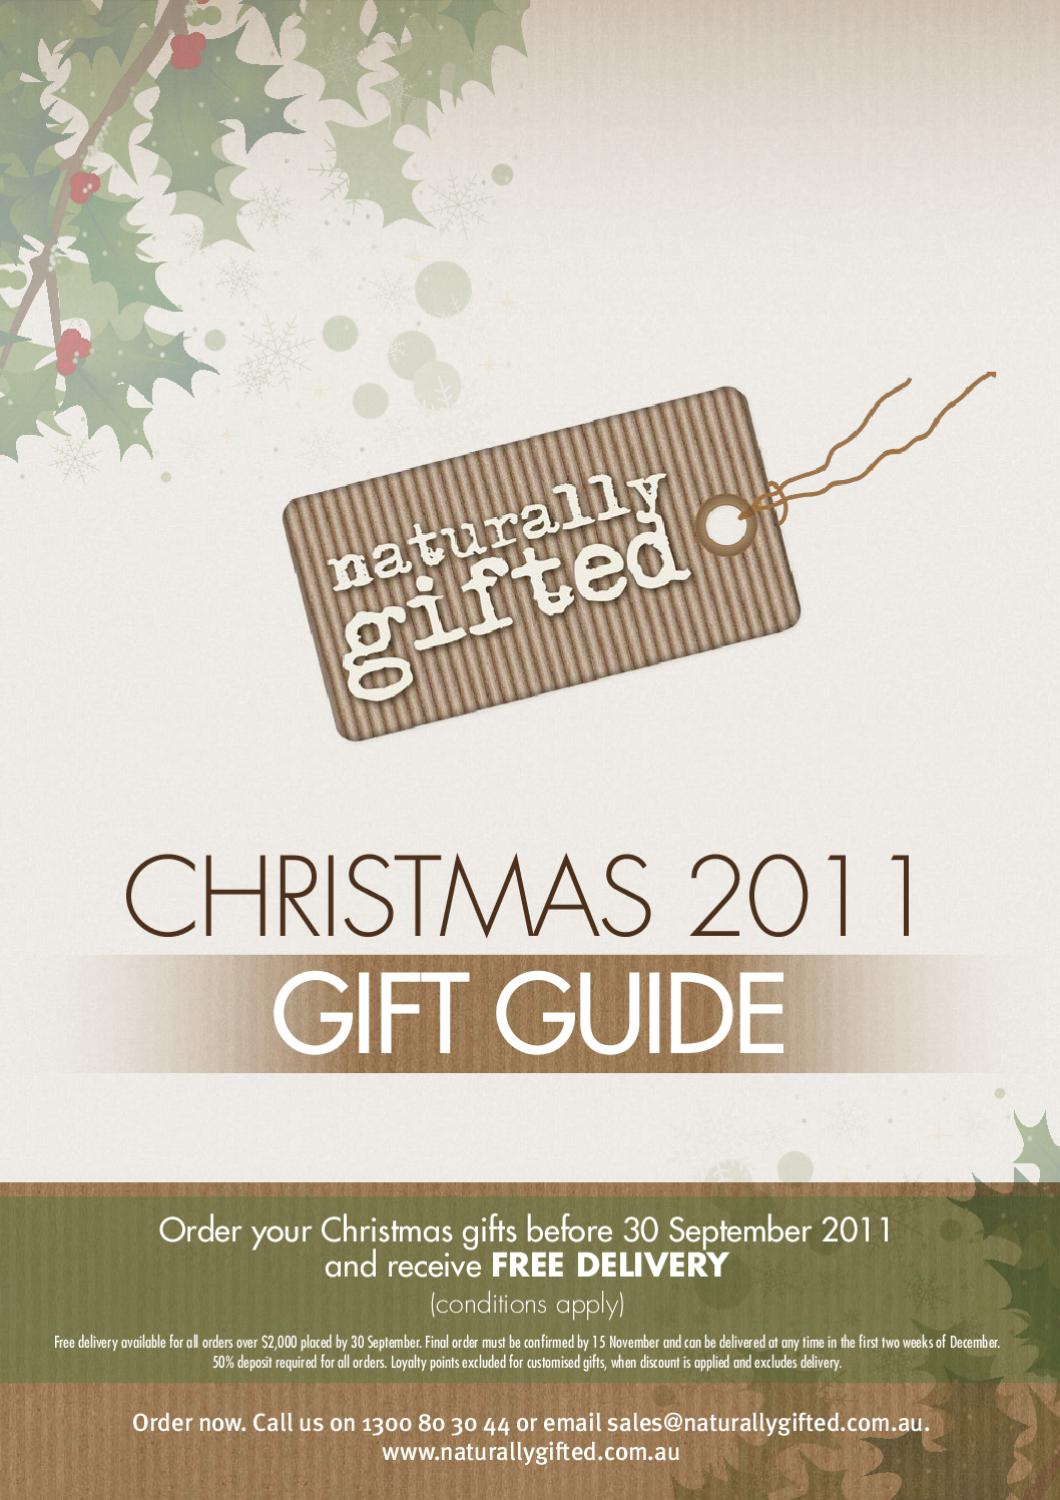 Order now for christmas delivery gift